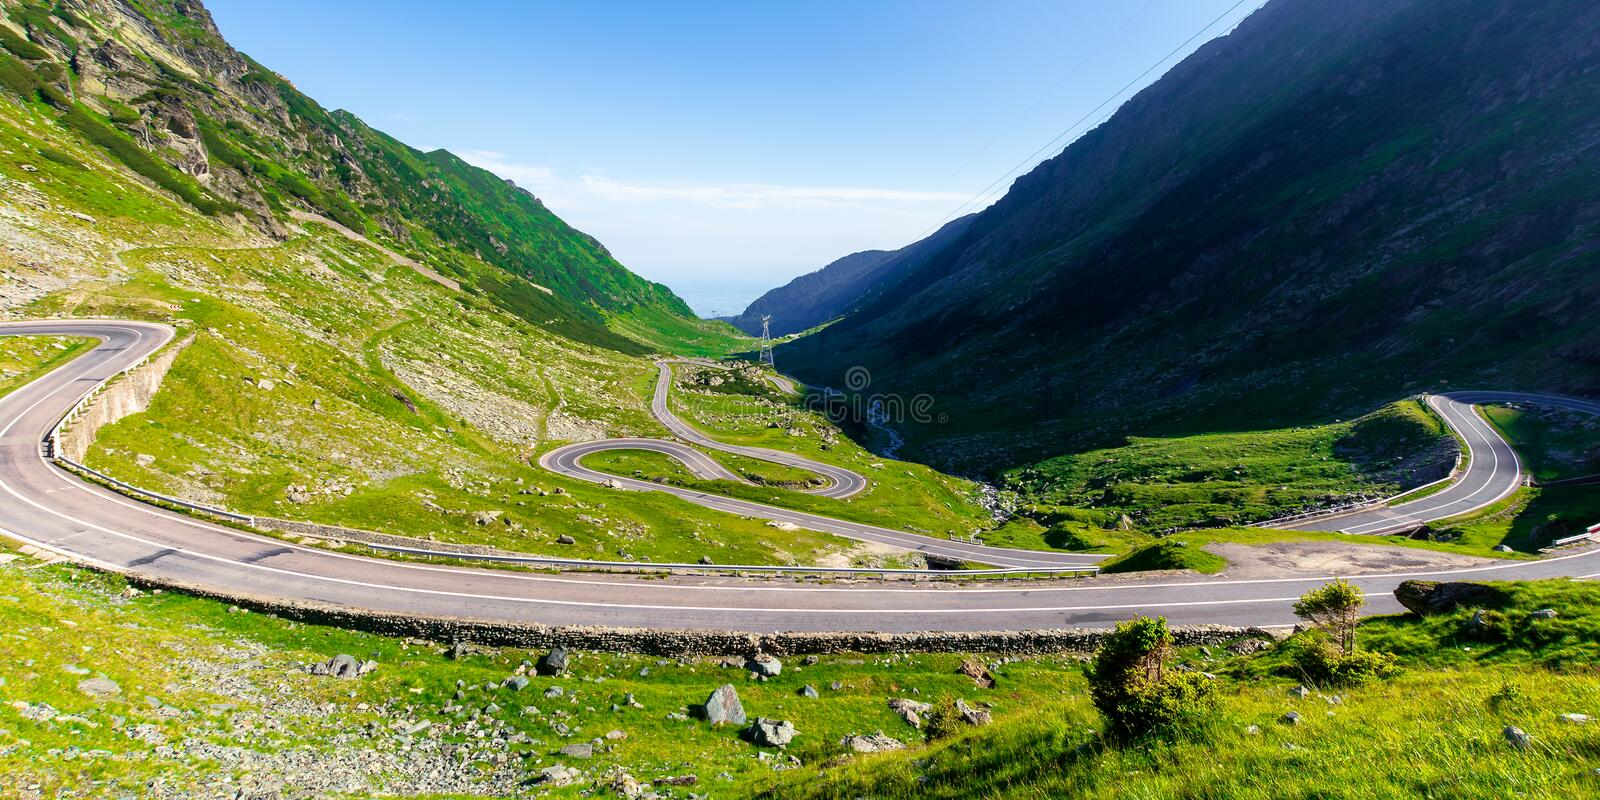 Winding mountain road on a sunny day. Empty highway run through valley. open vista in the distance. great european journey in summertime concept royalty free stock image